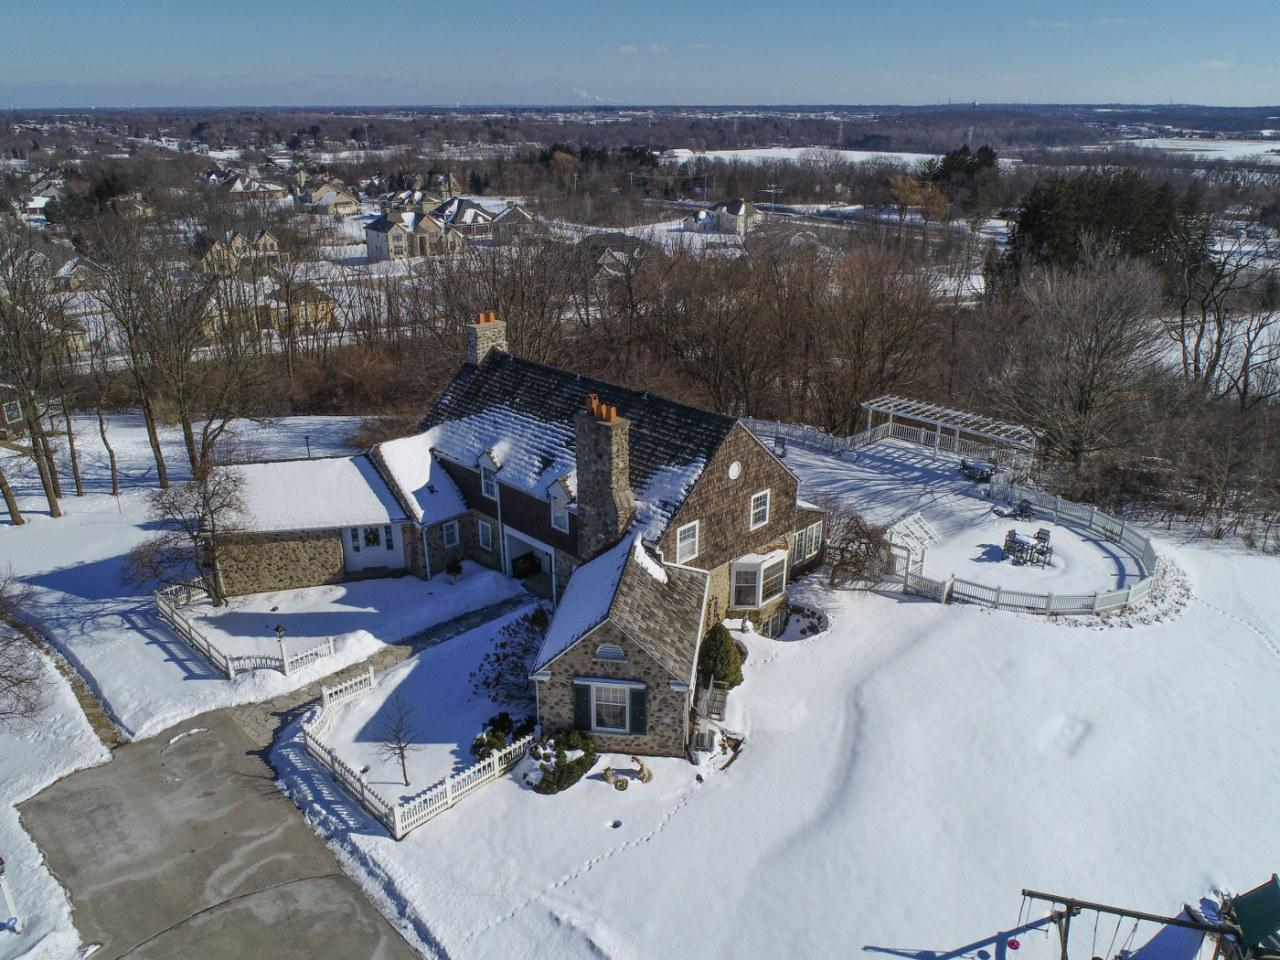 Epic estates like this come along only once in a lifetime! Do not deny yourself the satisfaction of owning one of the most unique & intriguing properties in Brookfield & maybe even all of SE WI! Nestled atop 9+ acres, you will enjoy privacy, sweeping vistas & wildlife! East Coast influence blends w/an English flare to create a harmonious place to call home. Outdoor amenities are resort-like & offer infinite possibilities! According to the Town of Brookfield there could be potential to have horses on the property. A guest house, a barn & a pool, OH MY! Low tax Town of Brookfield combined w/Elmbrook Schools, what a treat! The interior is host to 30's charm & character w/modern touches. Phenomenal location. Exceptionally epic. Don't let it slip away!